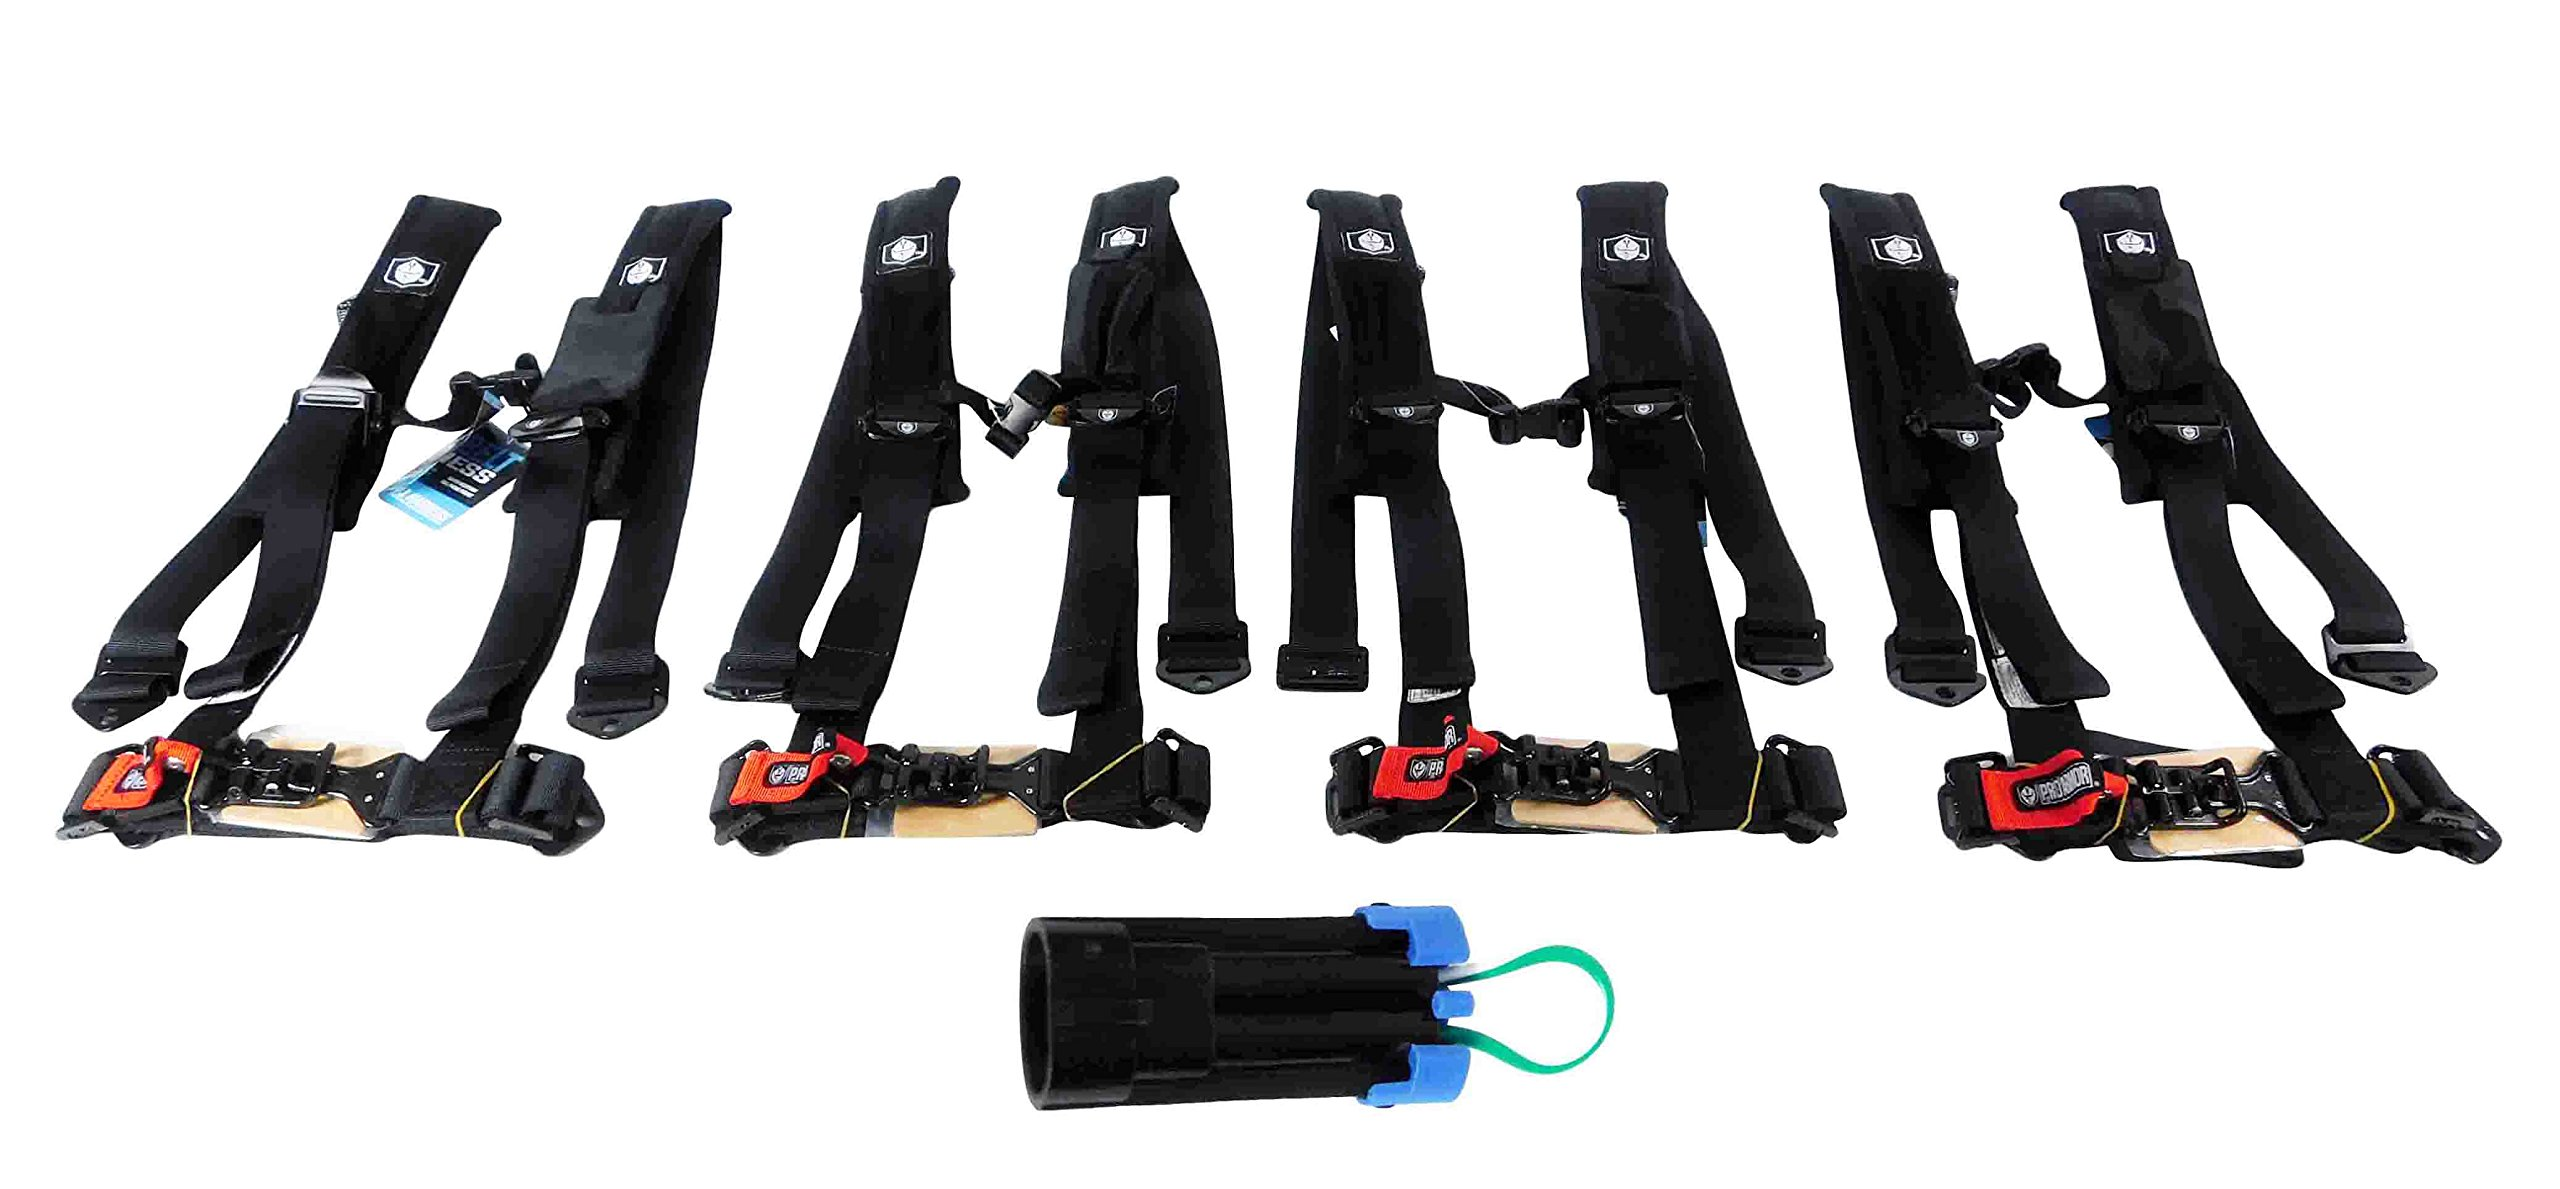 Pro Armor A114220 P151100 Black 4-Point Harness 2 Inch Straps, 4 Pack RZR UTV Seat Lap Belt with Bypass Clip by Pro Armor